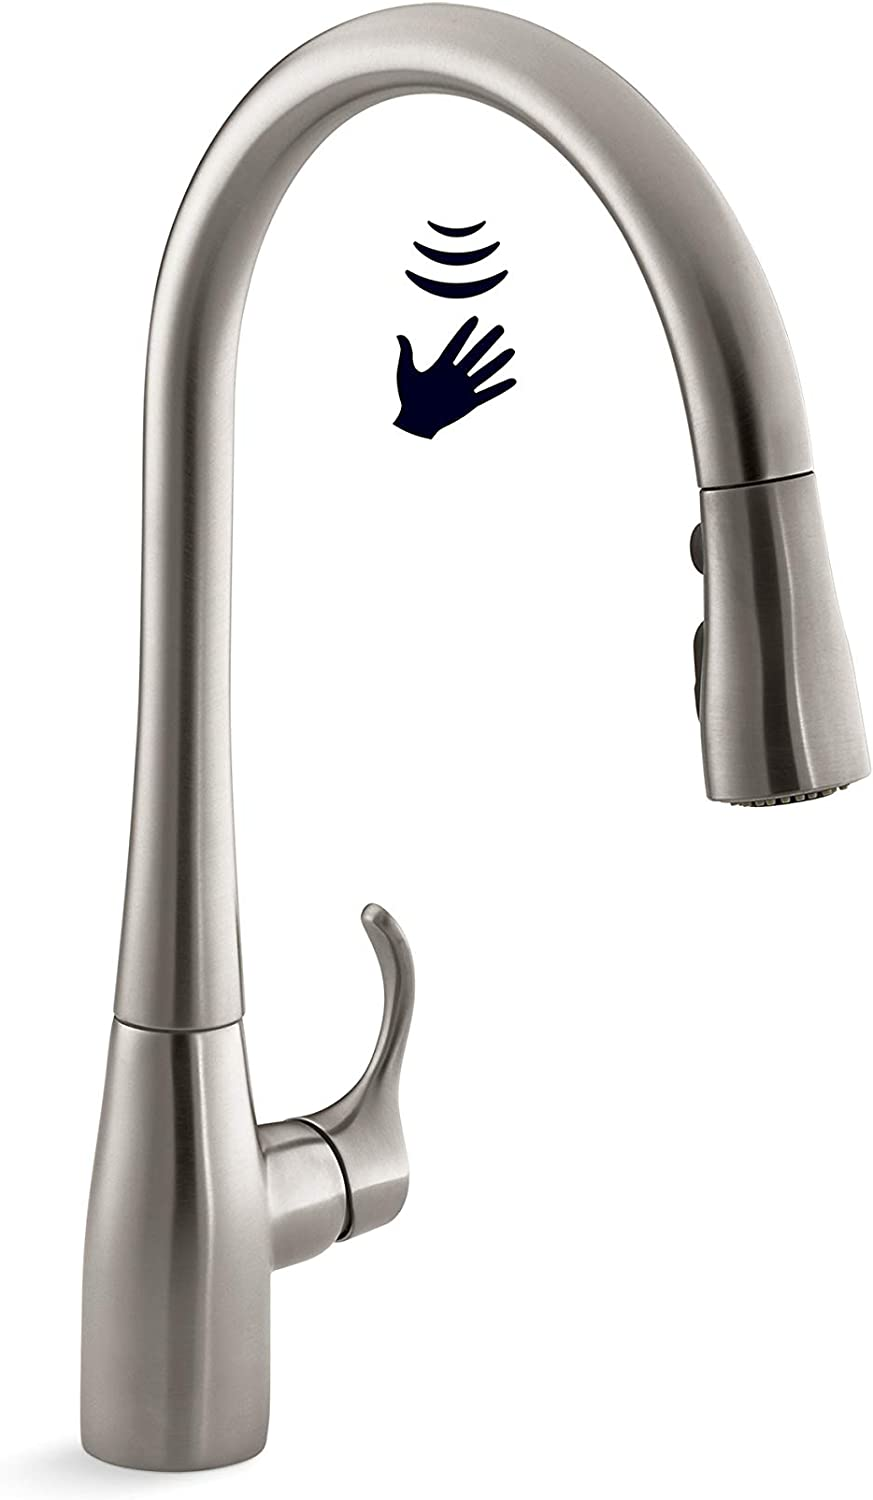 KOHLER Simplice Response Touchless Pull Down Kitchen Faucet in Stainless Steel, K-22036-VS